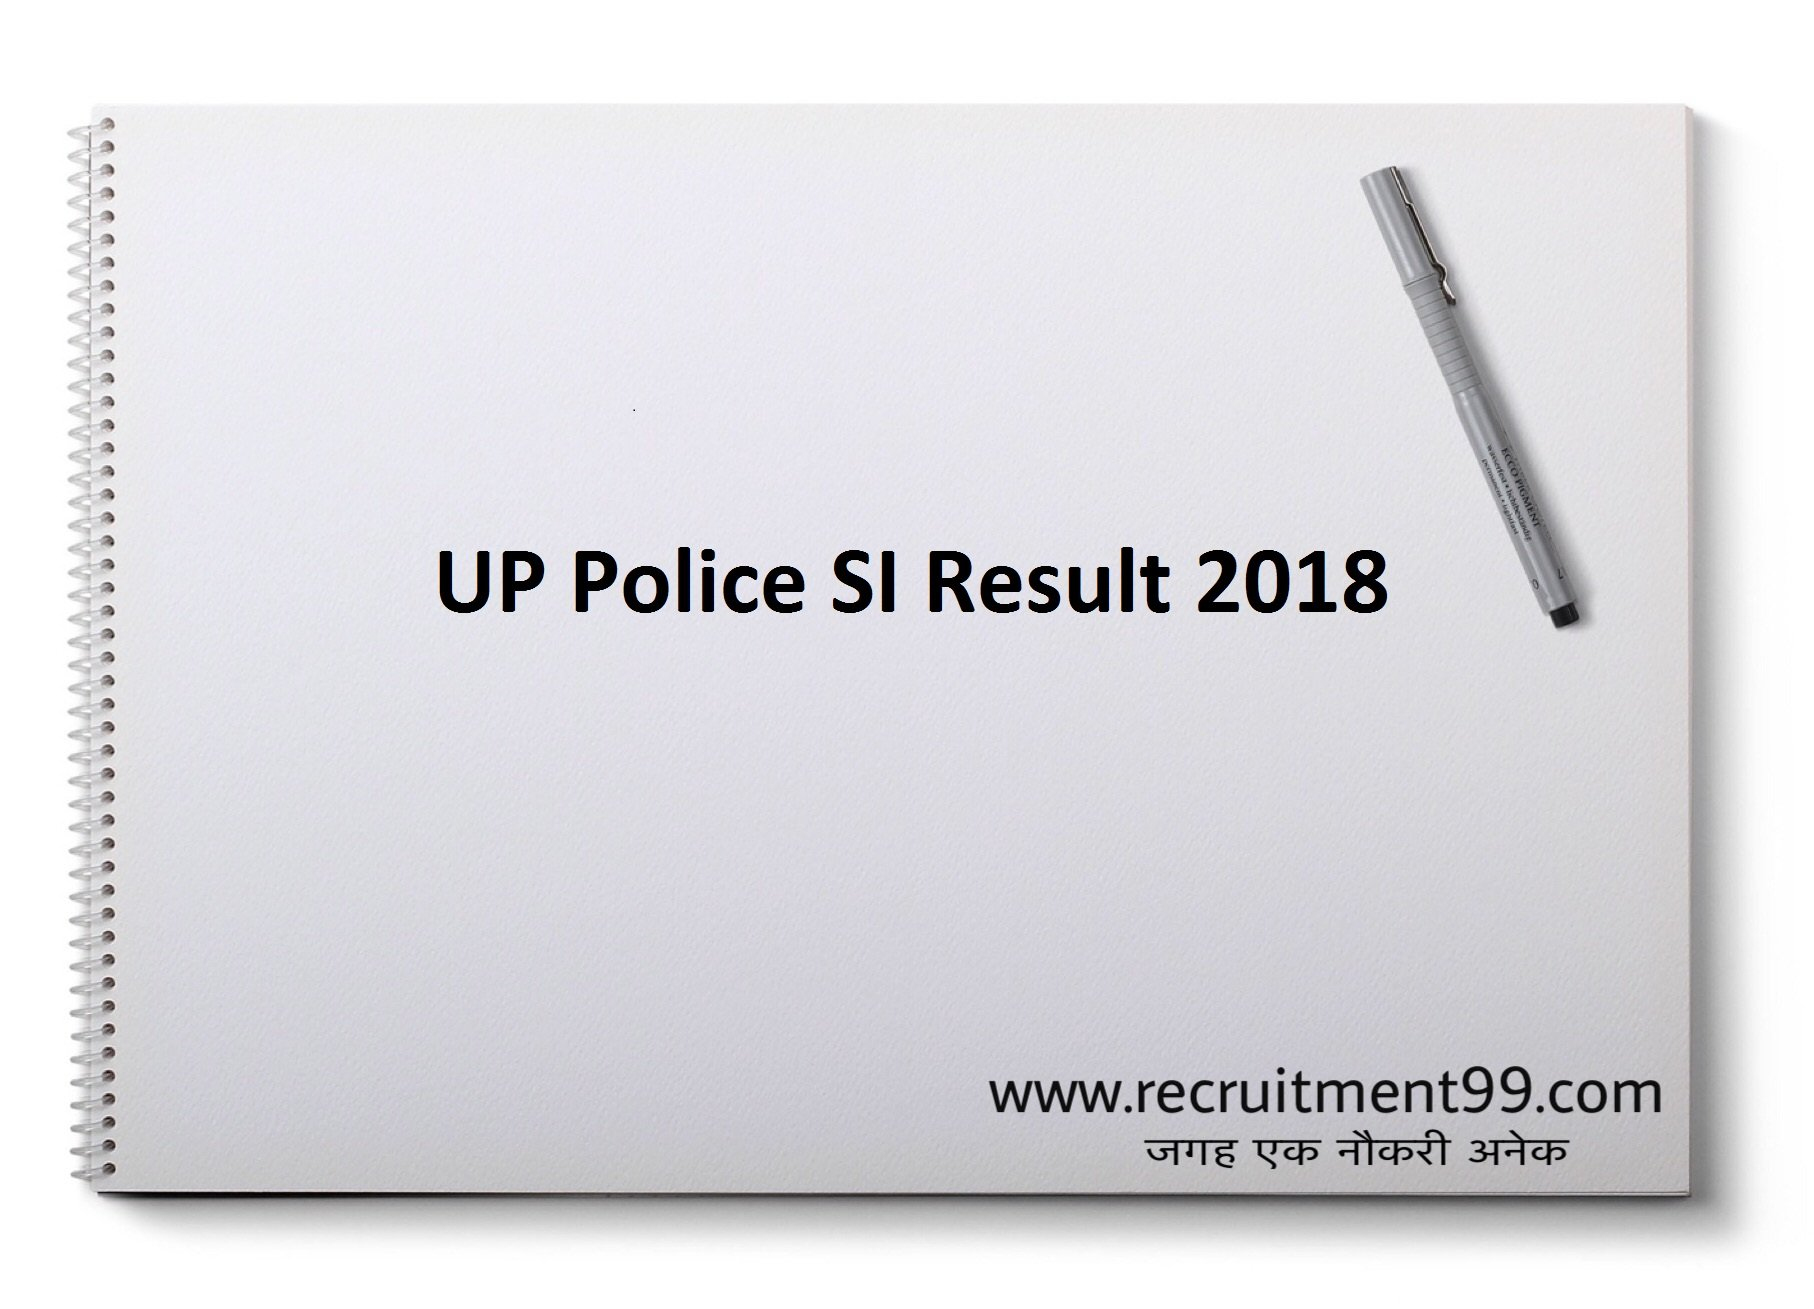 UP Police Sub Inspector SI Recruitment Admit Card Result 2018